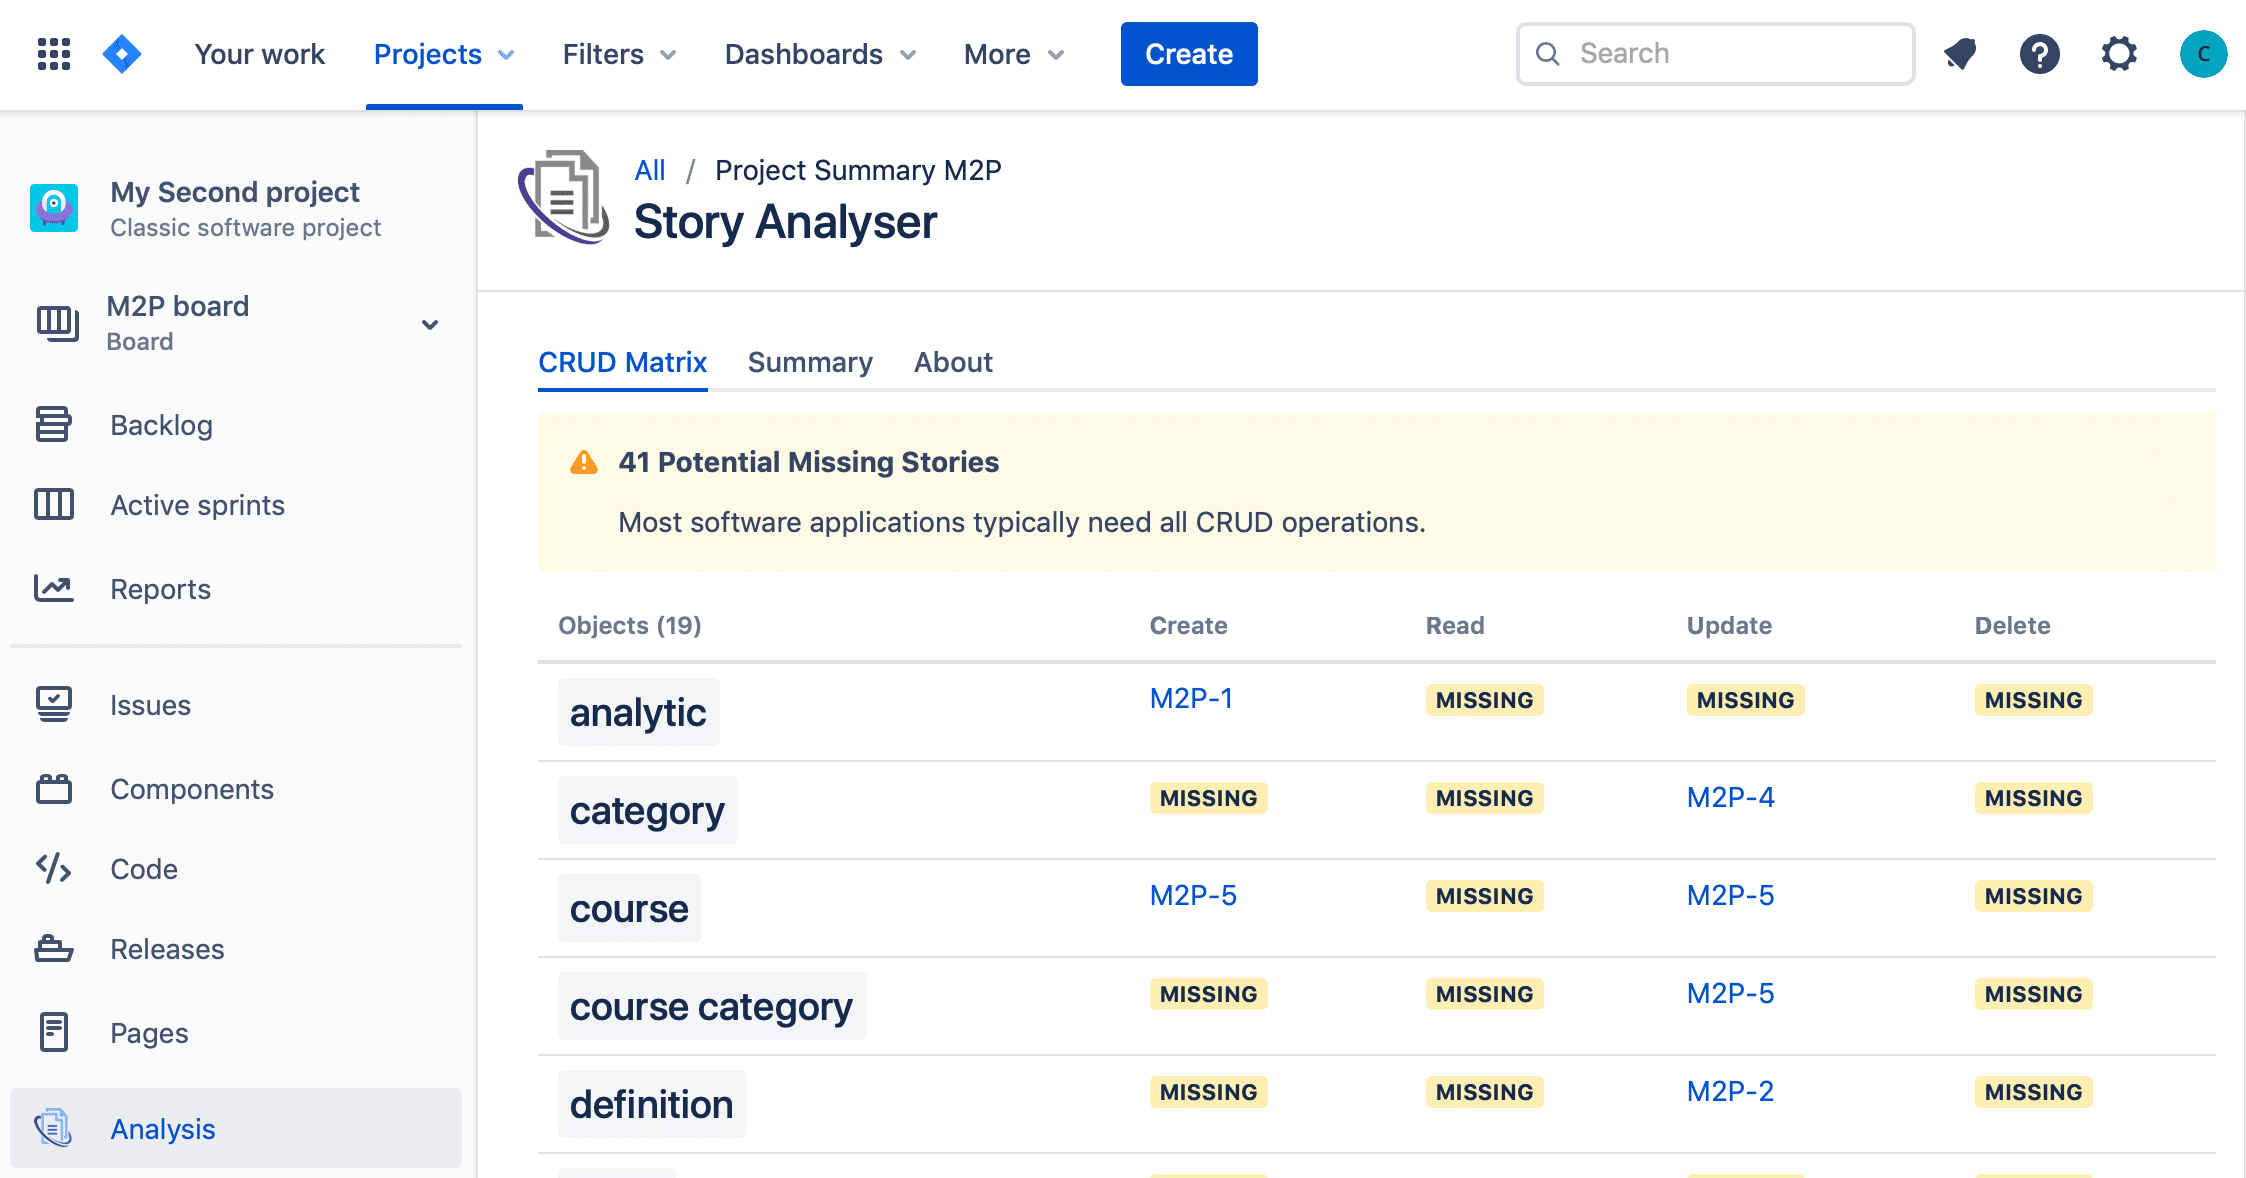 Story Analyser automatically generates the CRUD Matrix - saving you time in discovering missing and duplicated stories